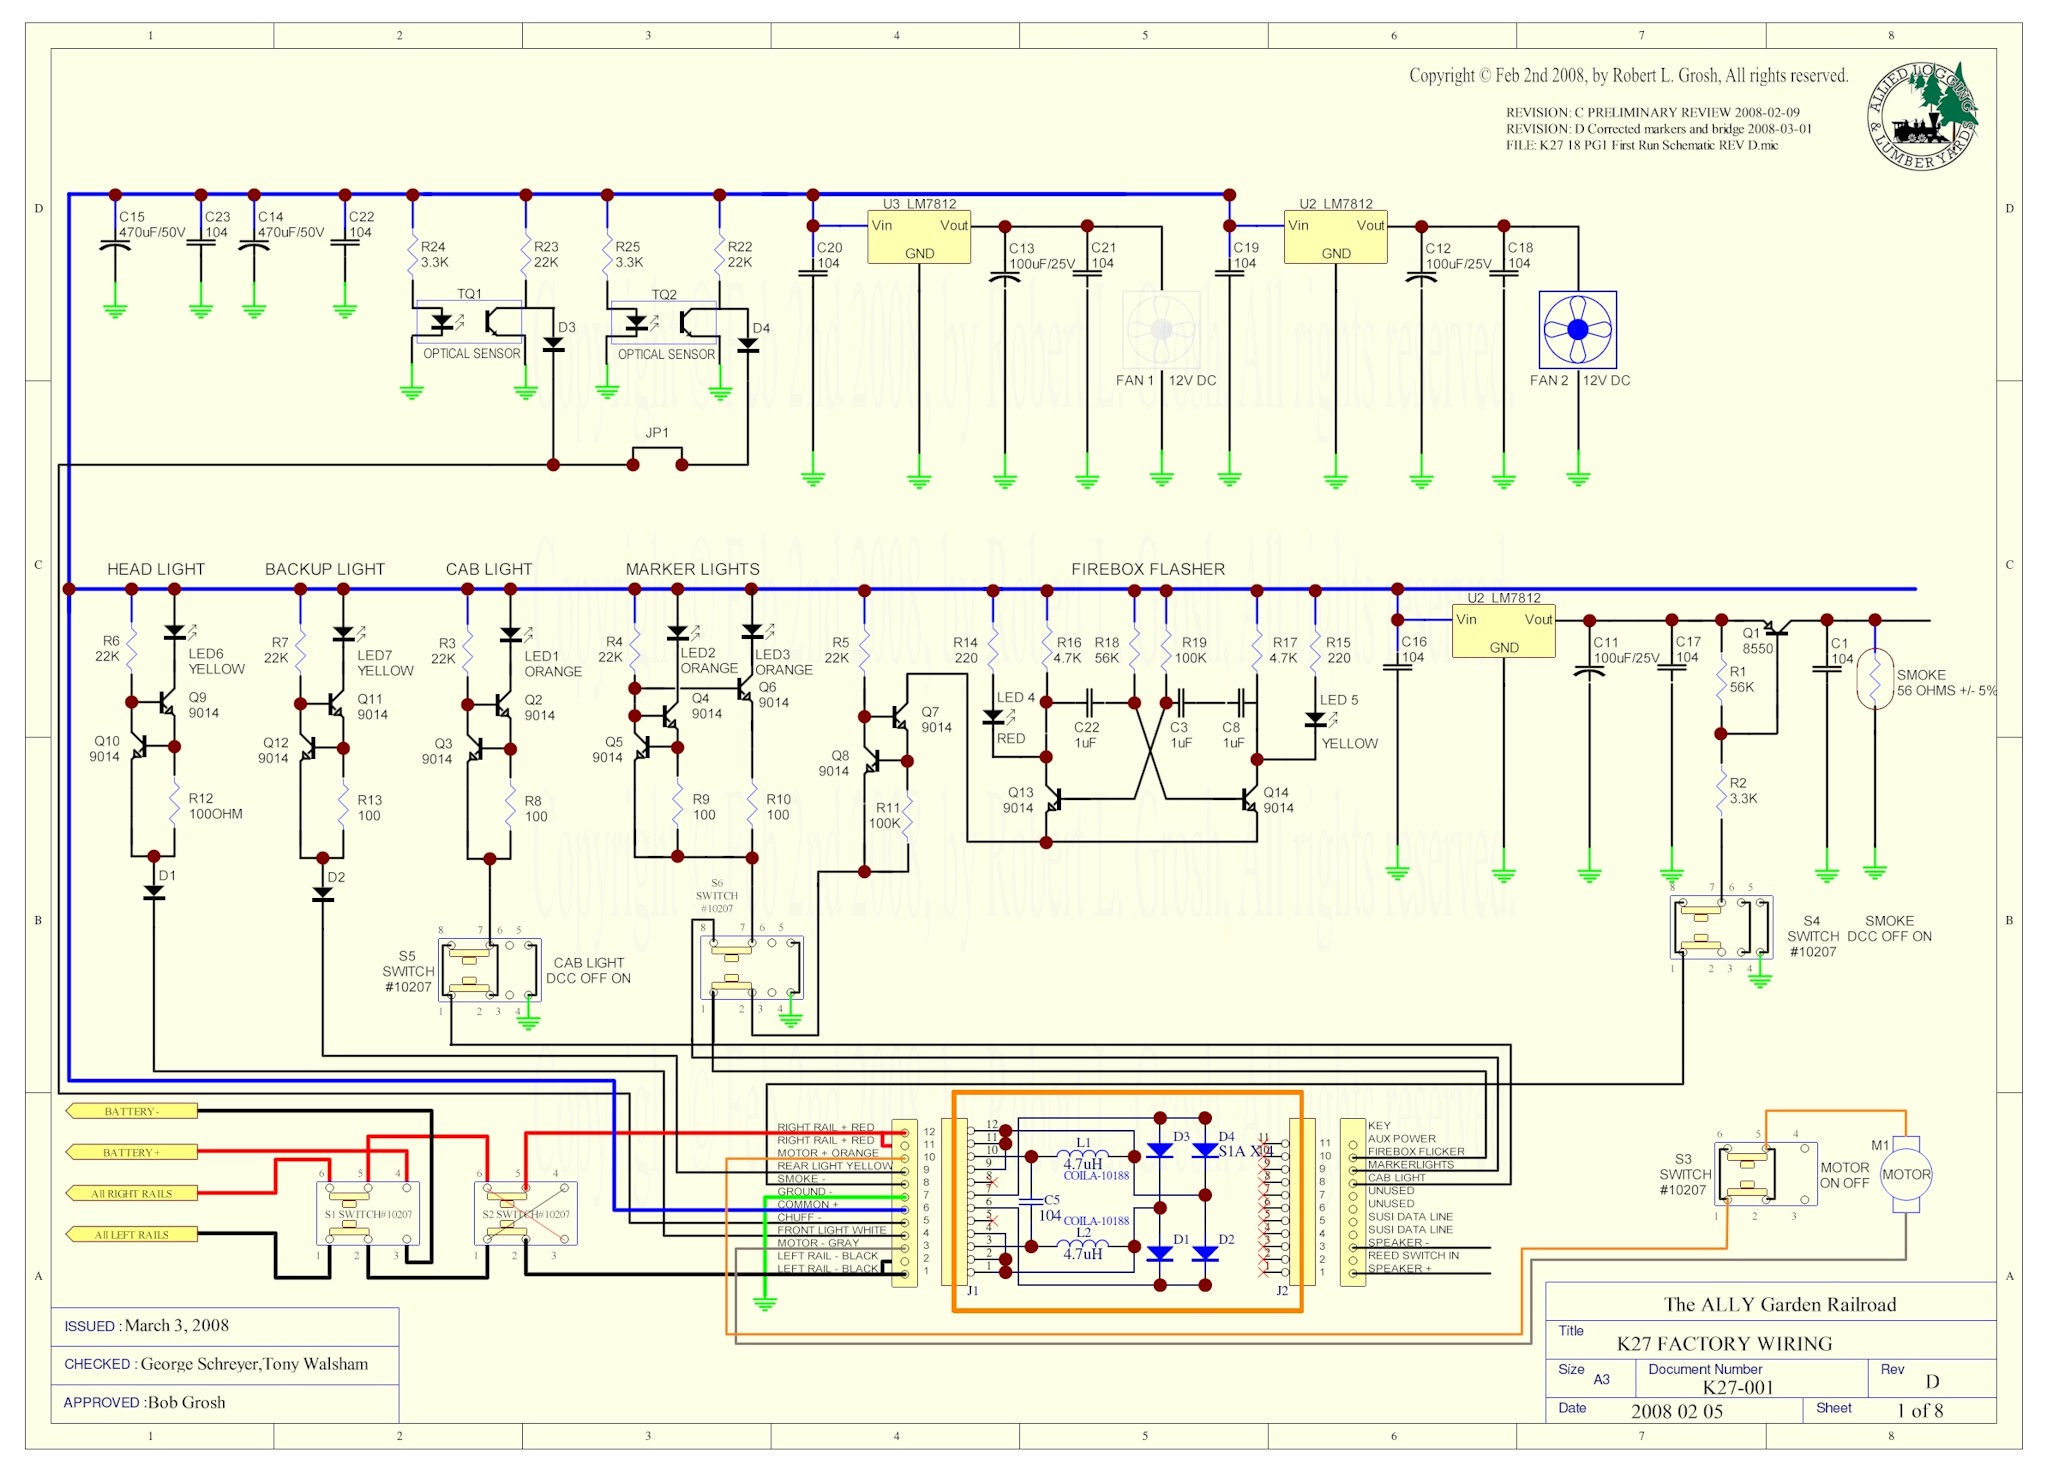 Bachmann Wiring Diagrams | Wiring Diagram on bachmann trains parts schematic, proto 2000 wiring diagrams, bachmann decoder wiring-diagram, diesel engine wiring diagrams, car wiring diagrams, dcc track wiring diagrams, bachmann big haulers parts,